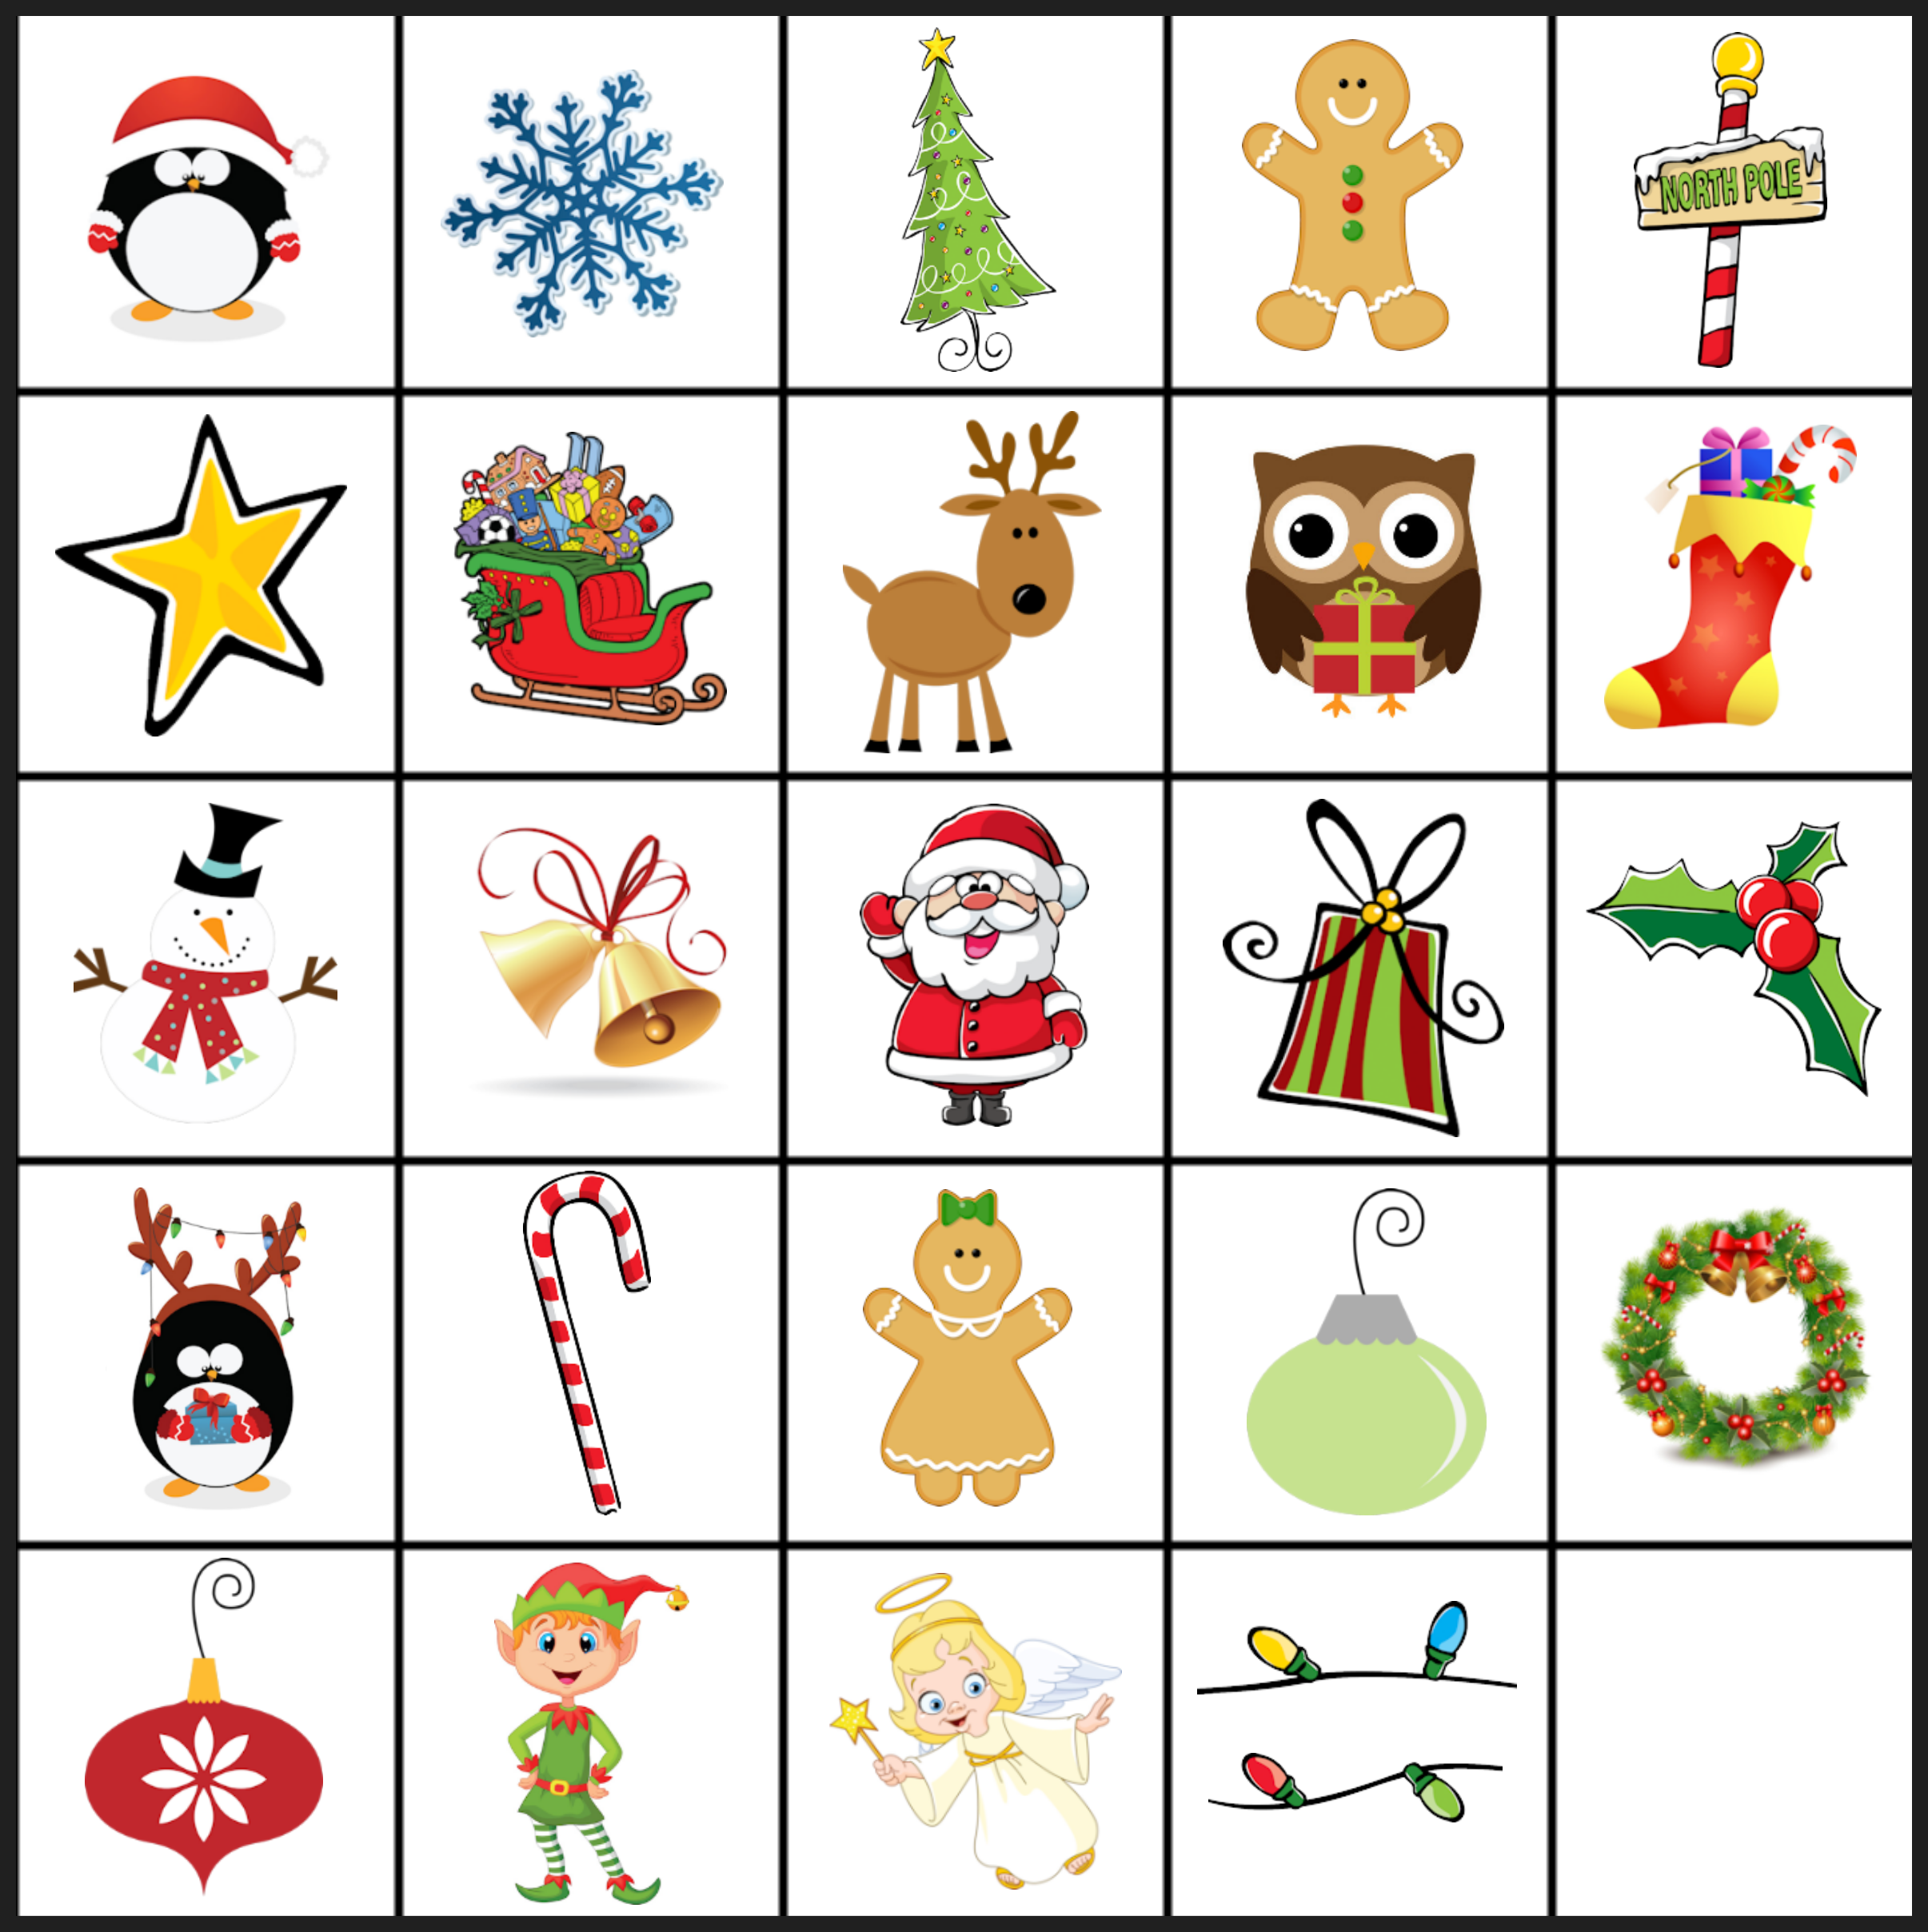 6 Images of Christmas Matching Game Printable